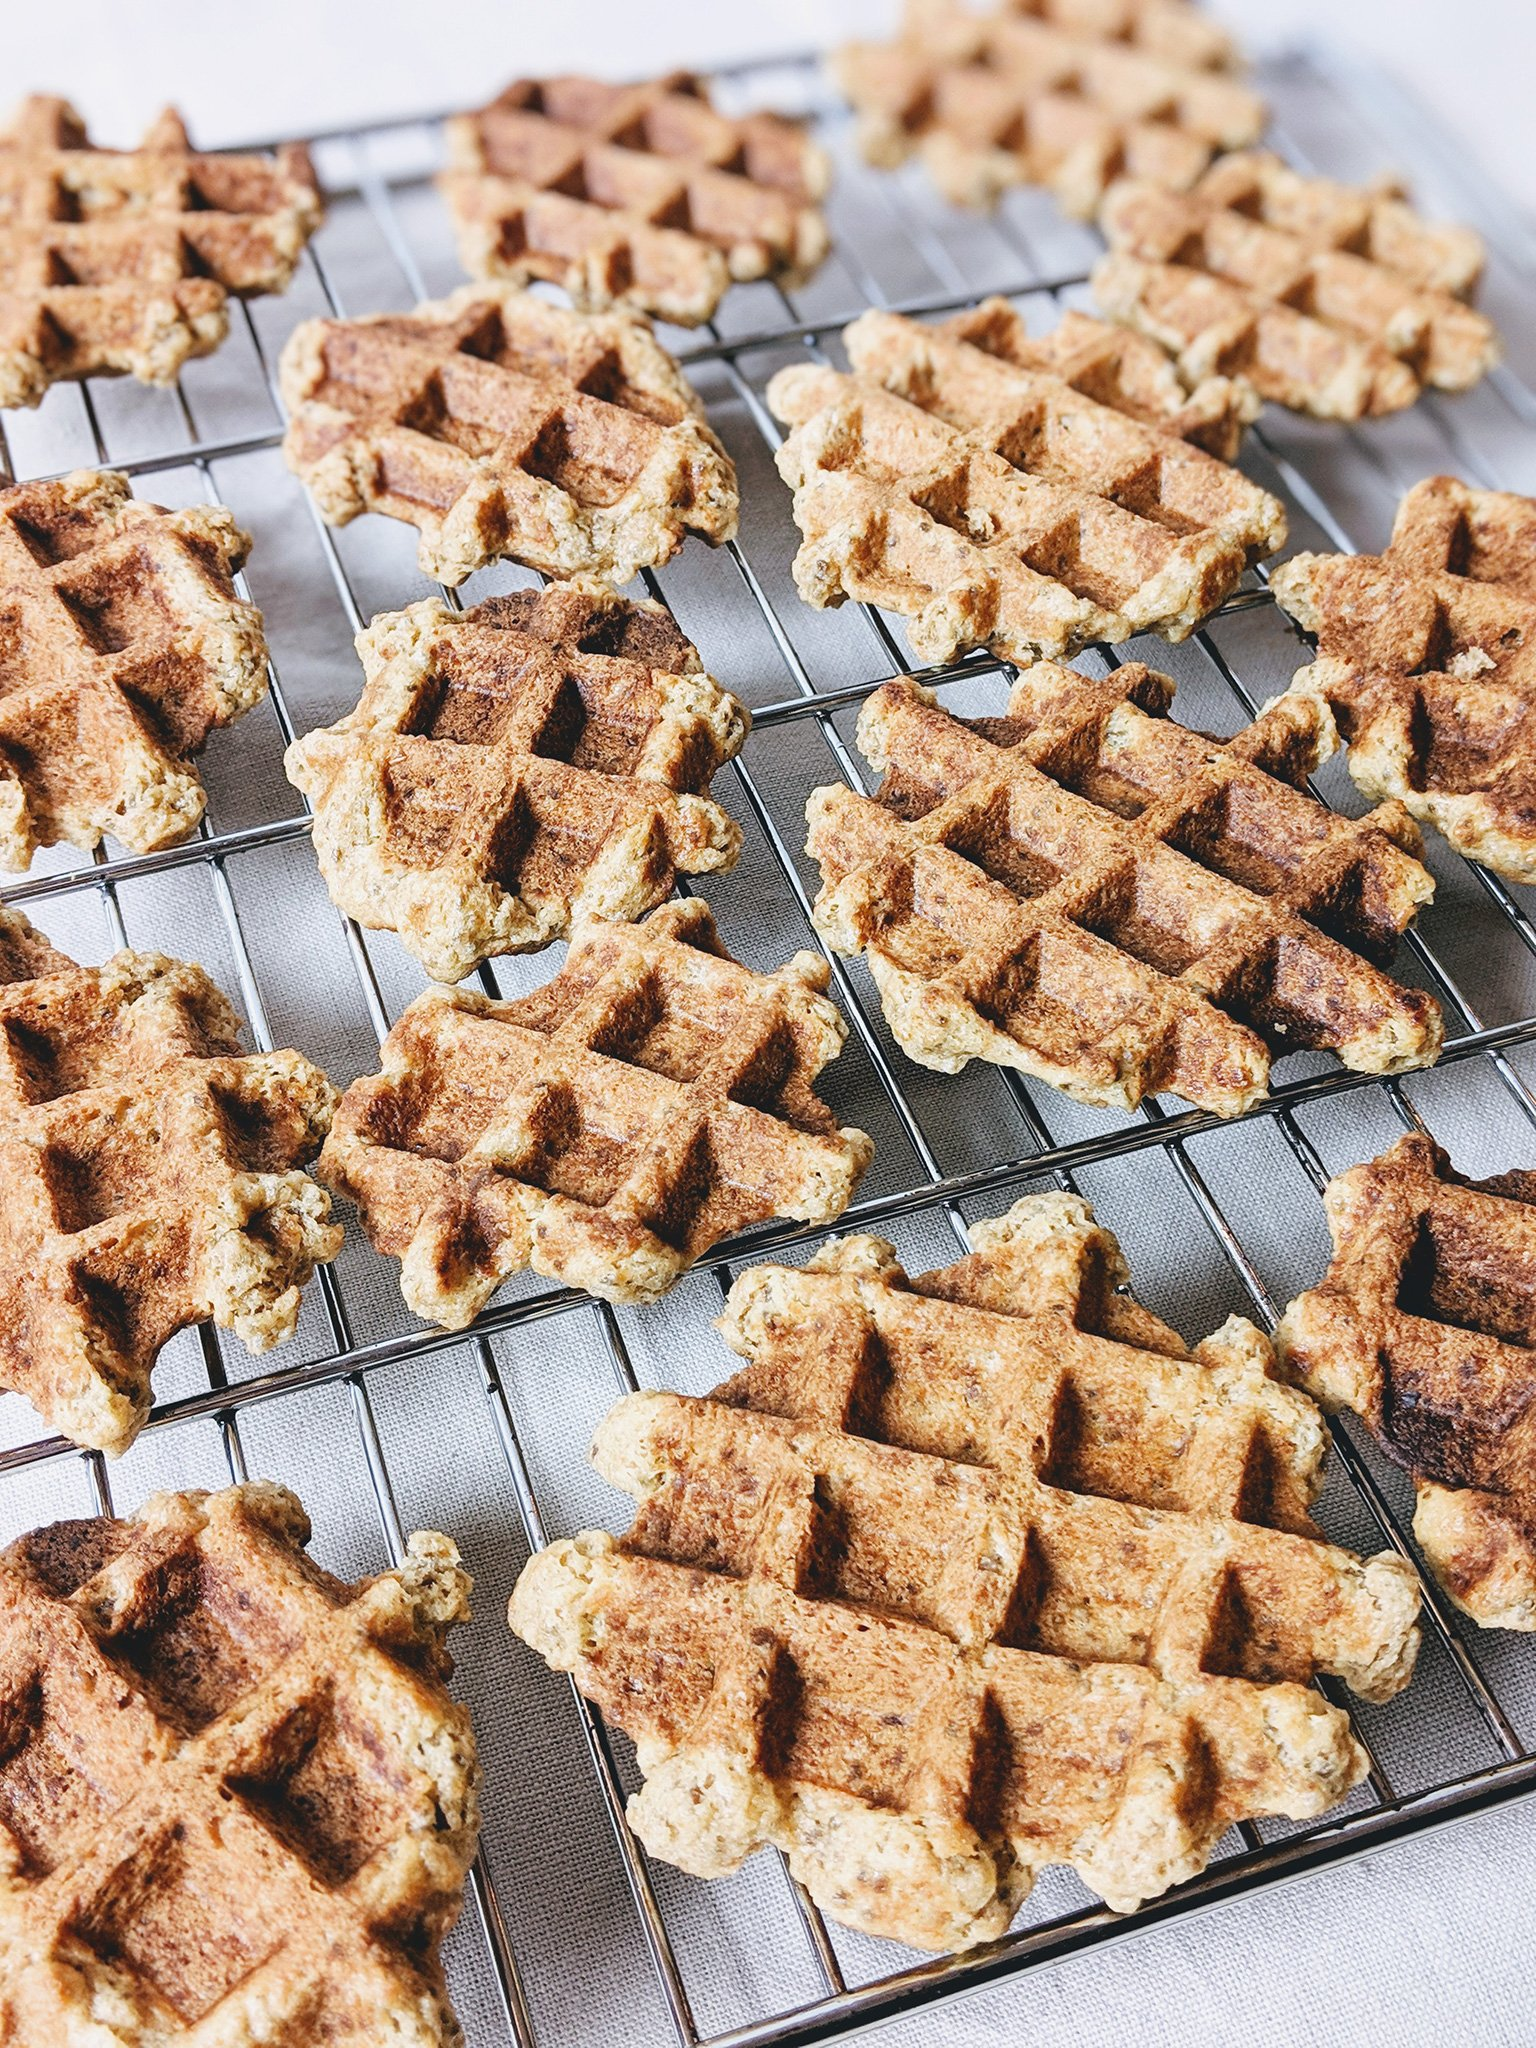 waanzinnege-wafeltjes-sustainable-family_f40e4527-f605-470b-8ca5-cc907329e398.jpg?v=1567711872